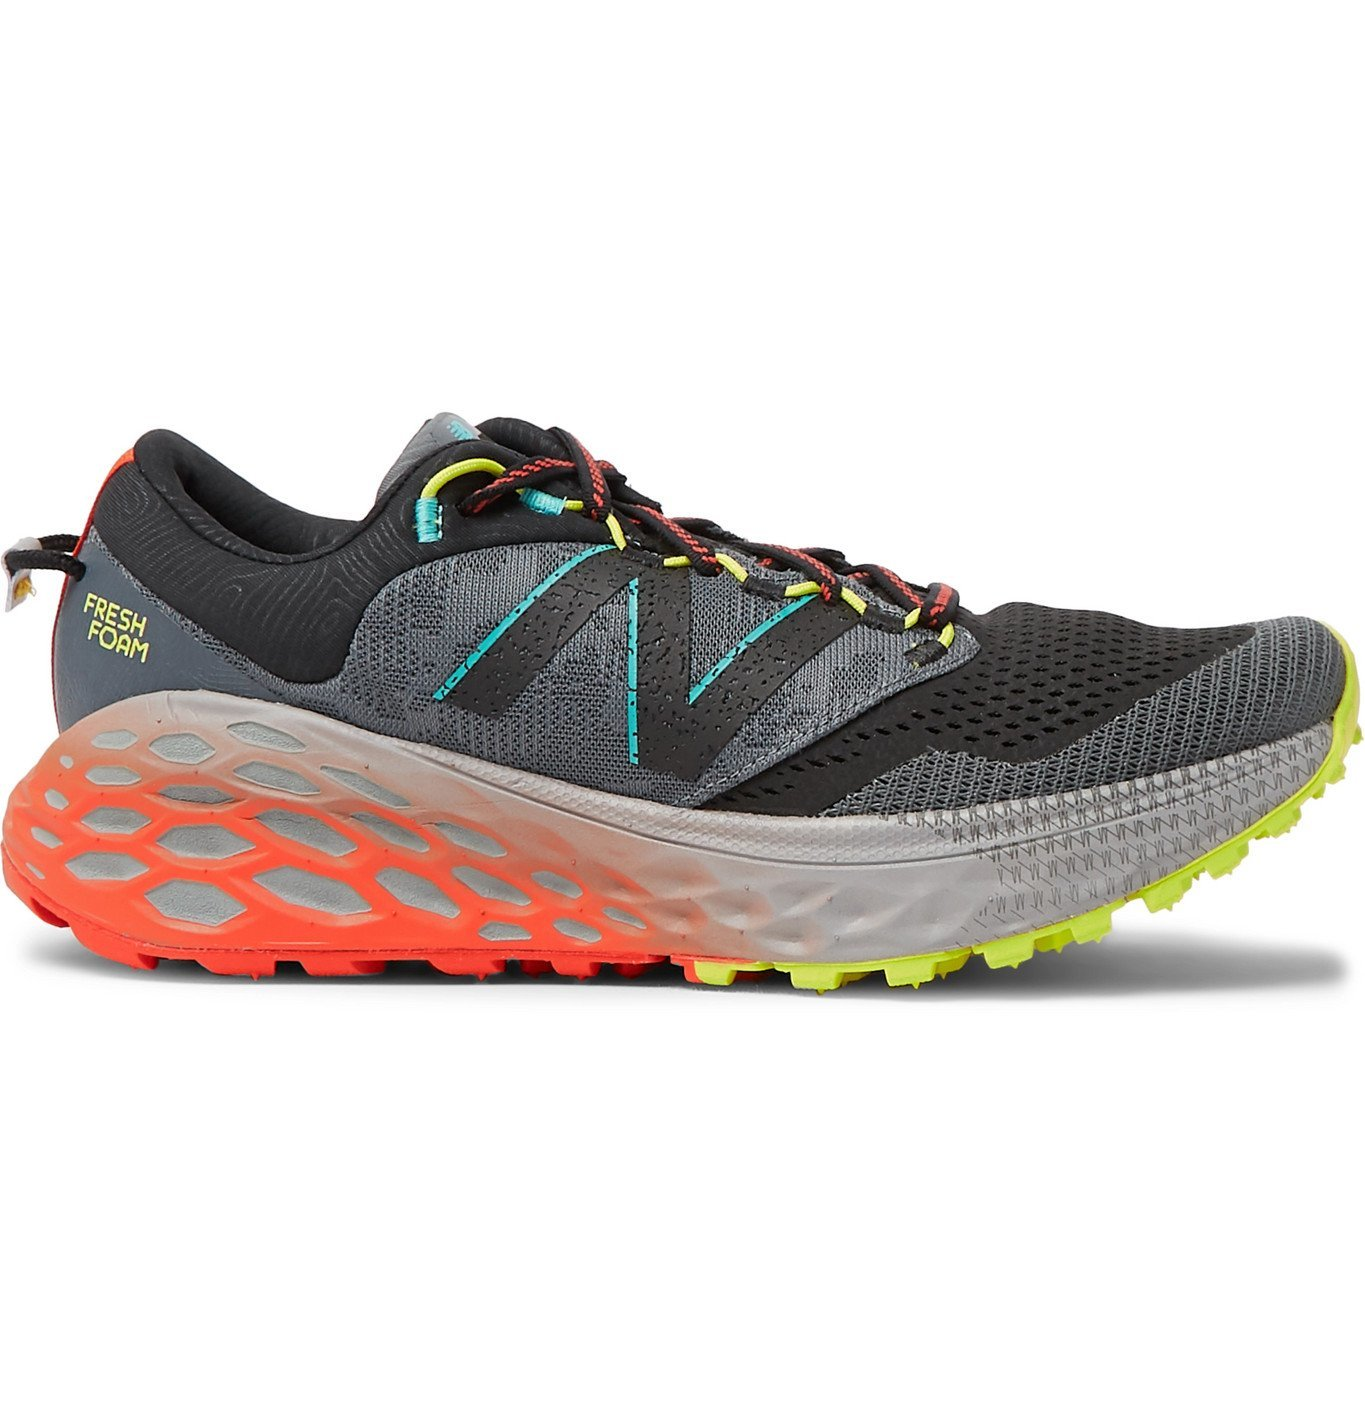 Photo: New Balance - Fresh Foam More Trail v1 Mesh and Rubber Trail Running Sneakers - Gray